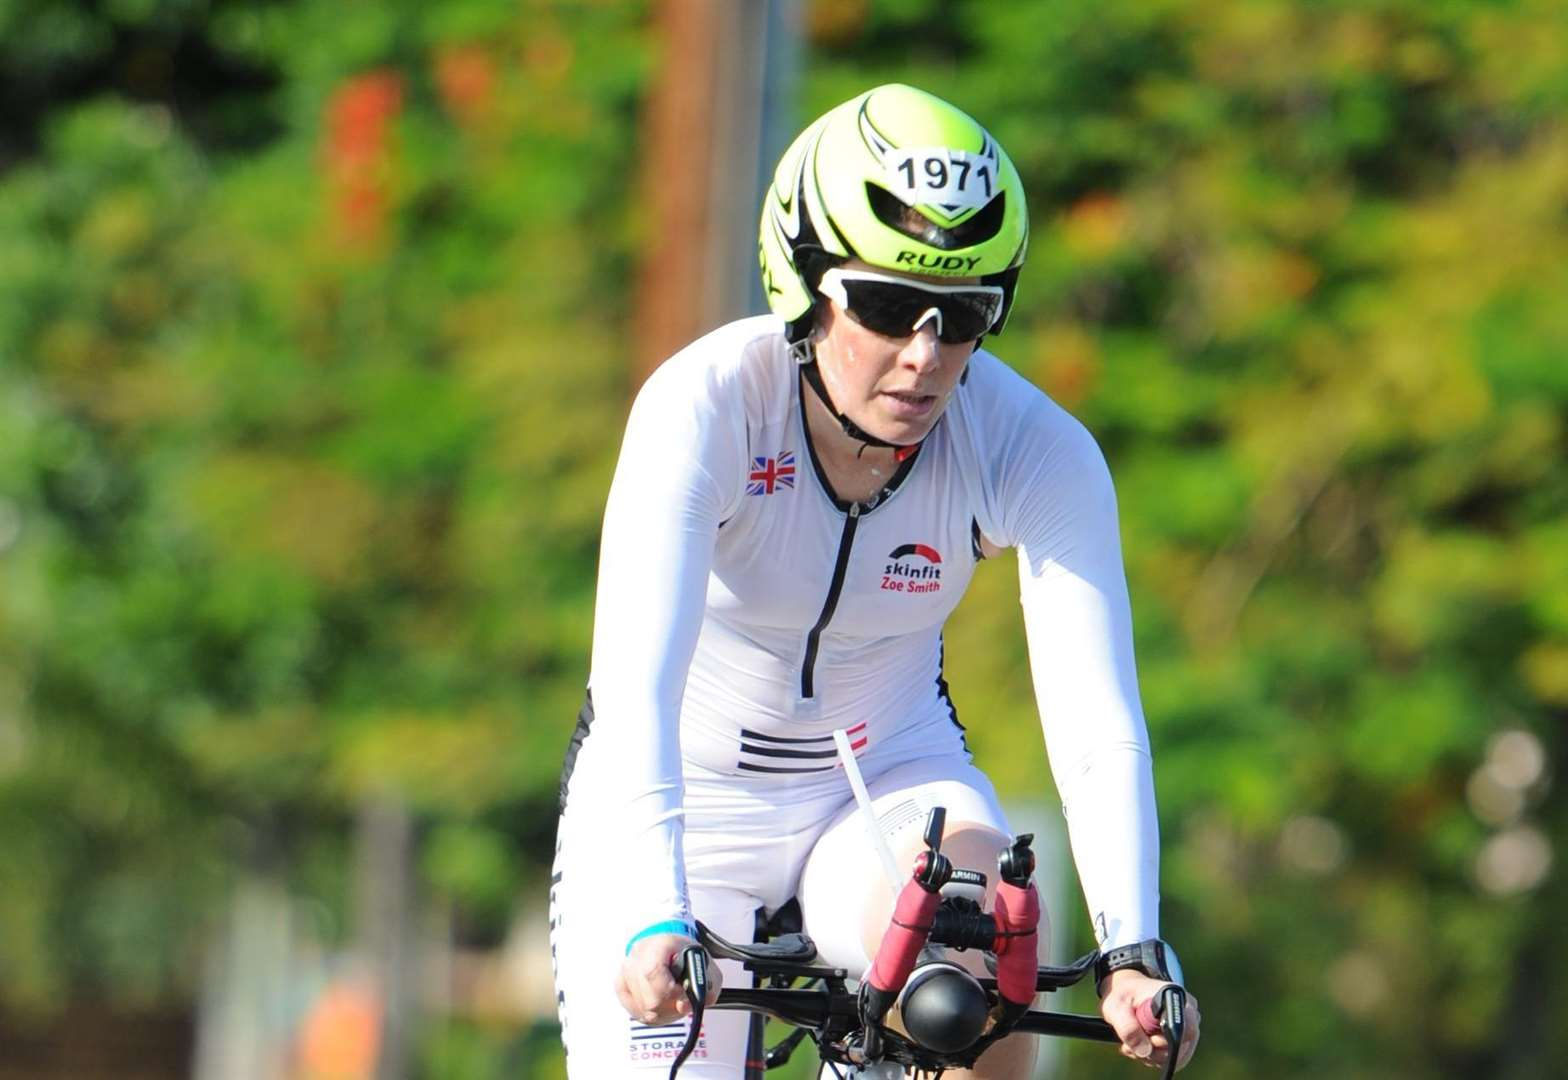 IRONMAN: Smith sets new best in world championships